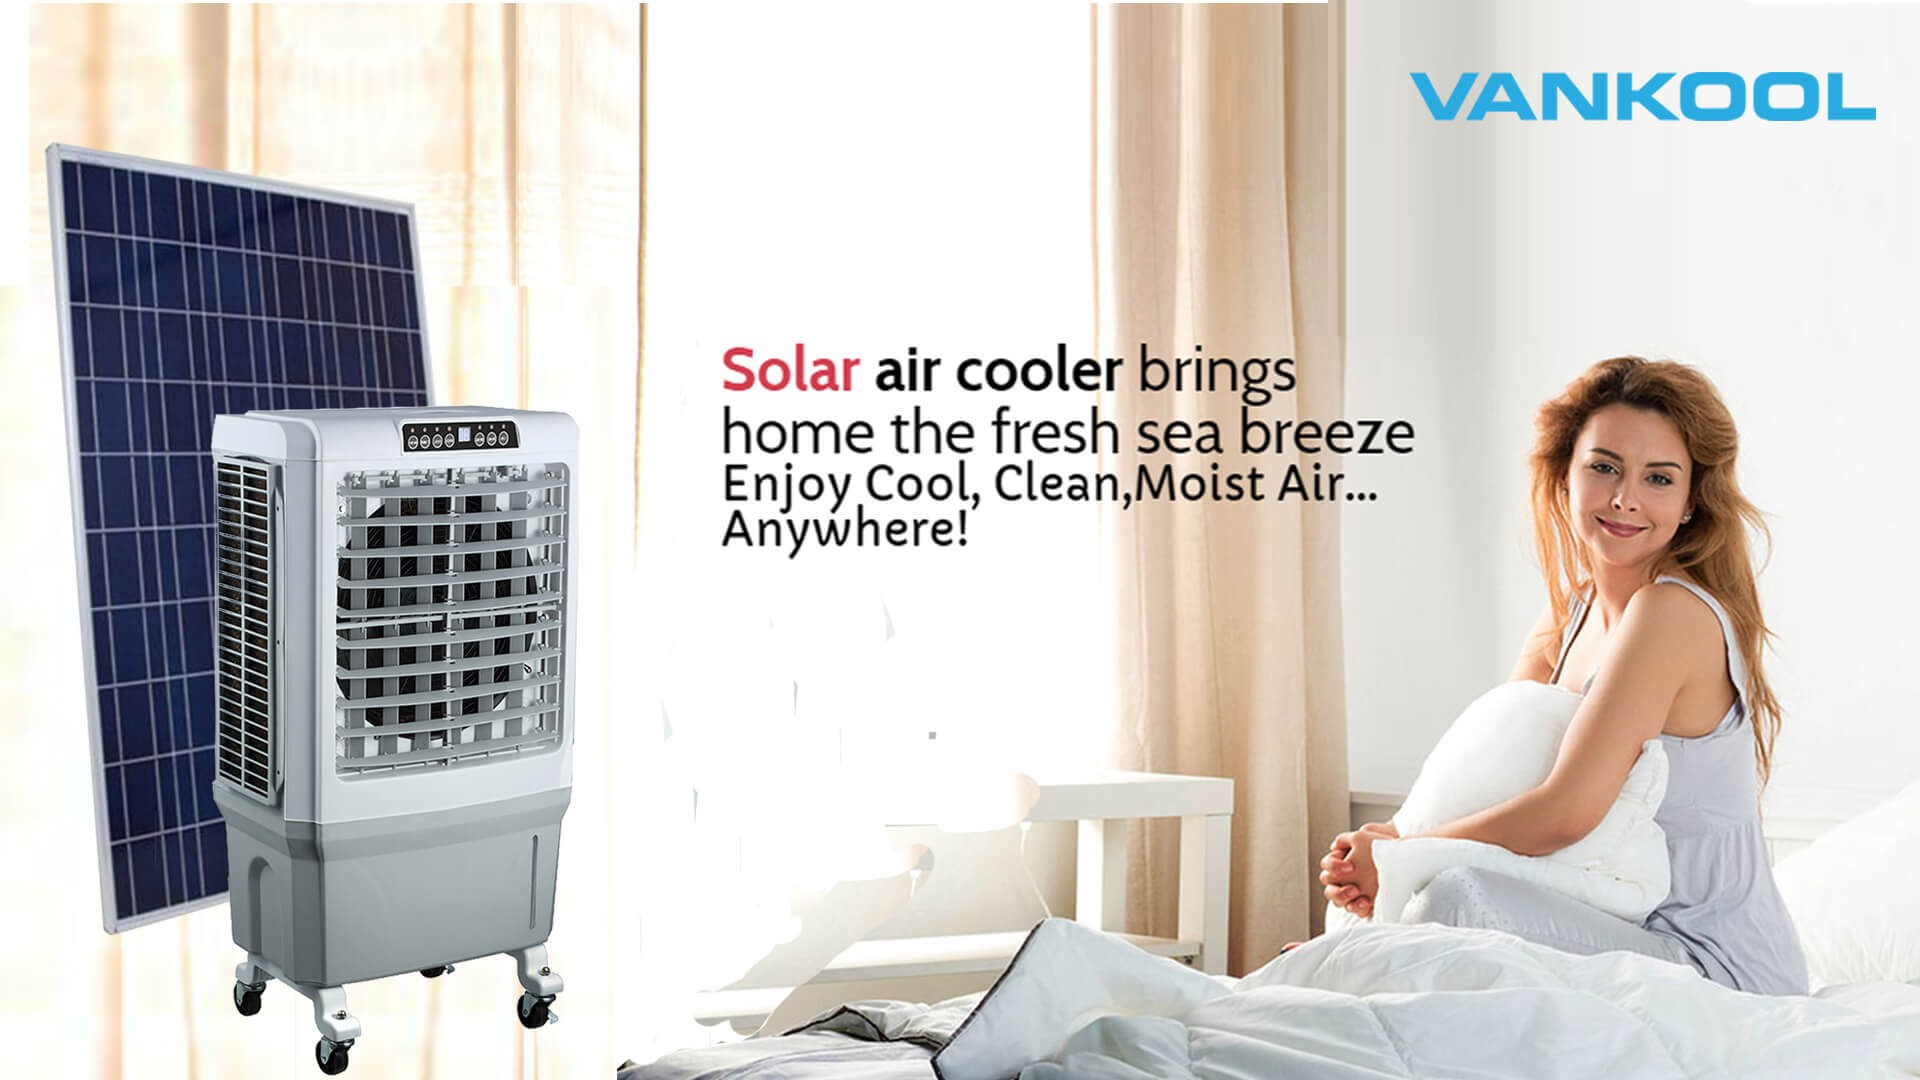 Healthier Homes with Air Cooler